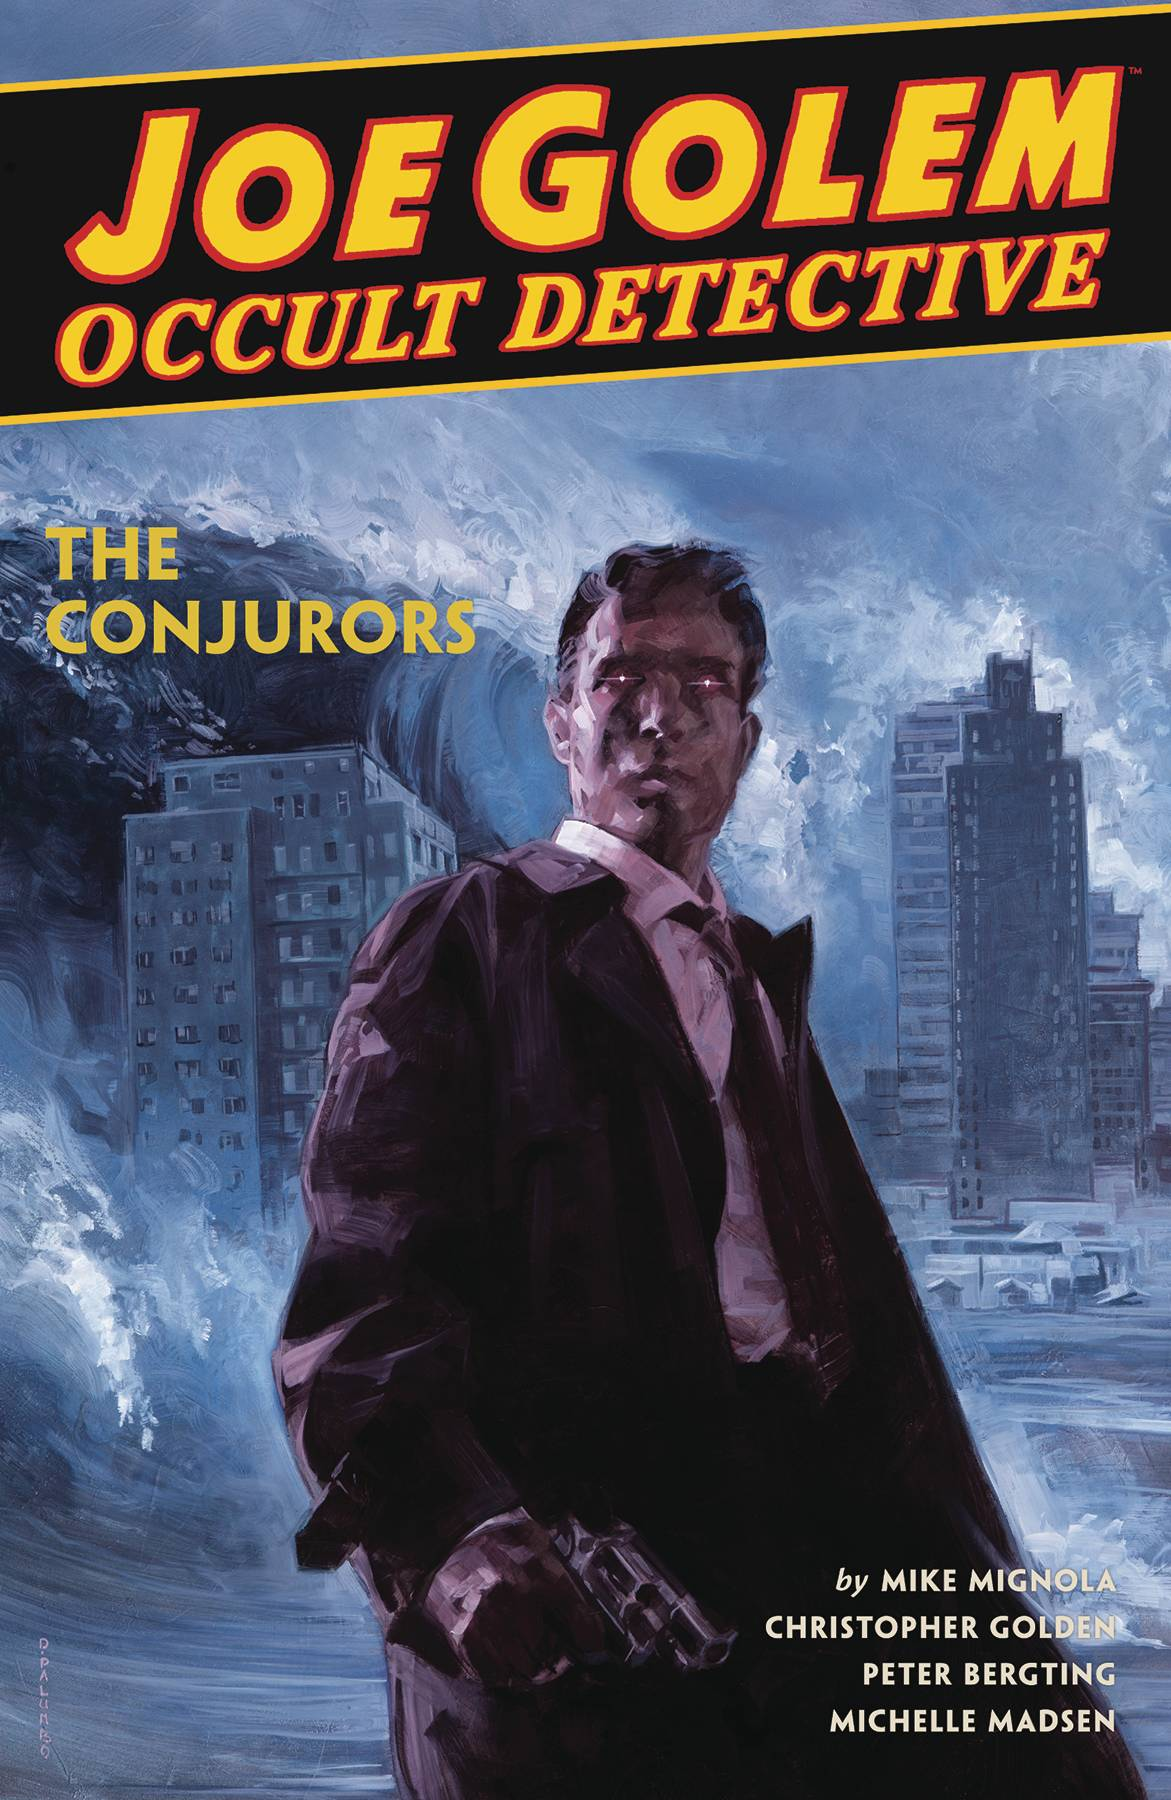 Joe Golem: Occult Detective Volume 4 - The Conjurors HC